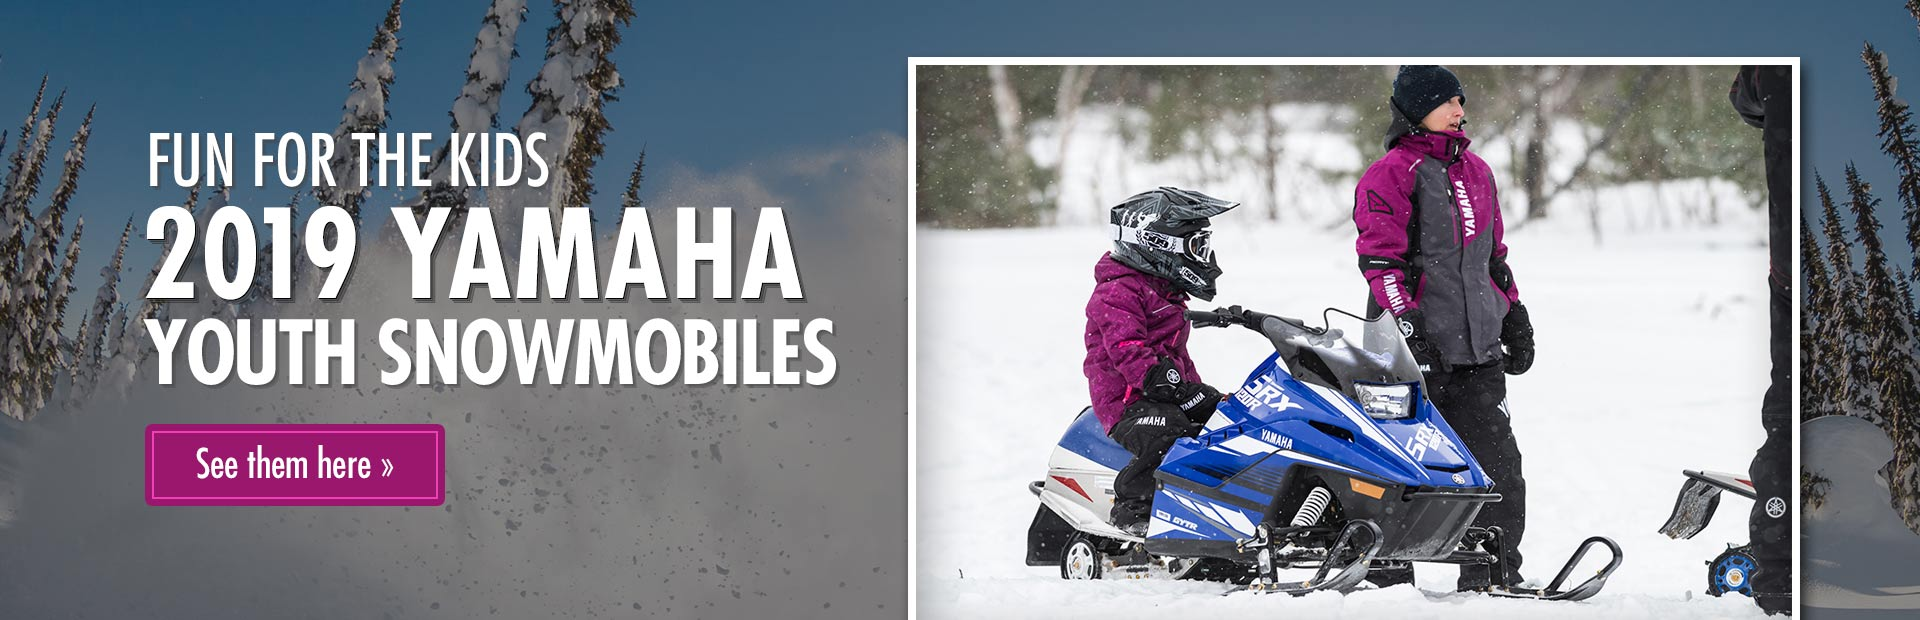 2019 Yamaha Youth Snowmobiles: Click here to view the models.